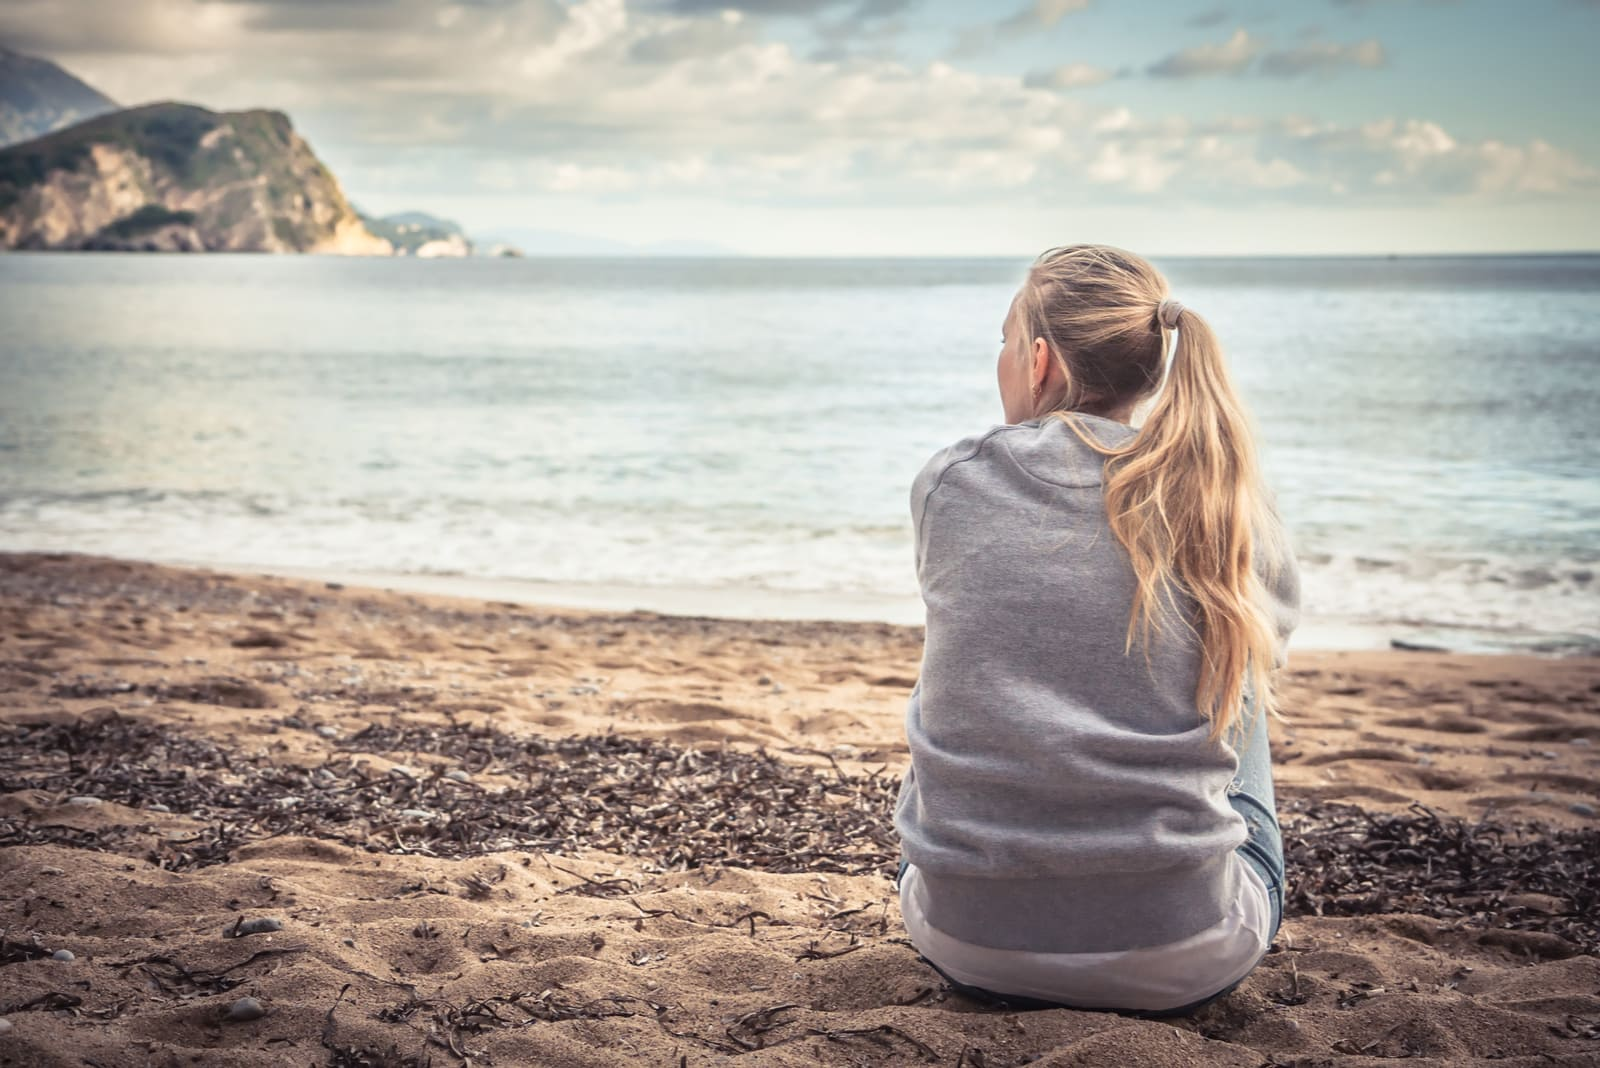 lonely young woman sitting on beach hugging her knees